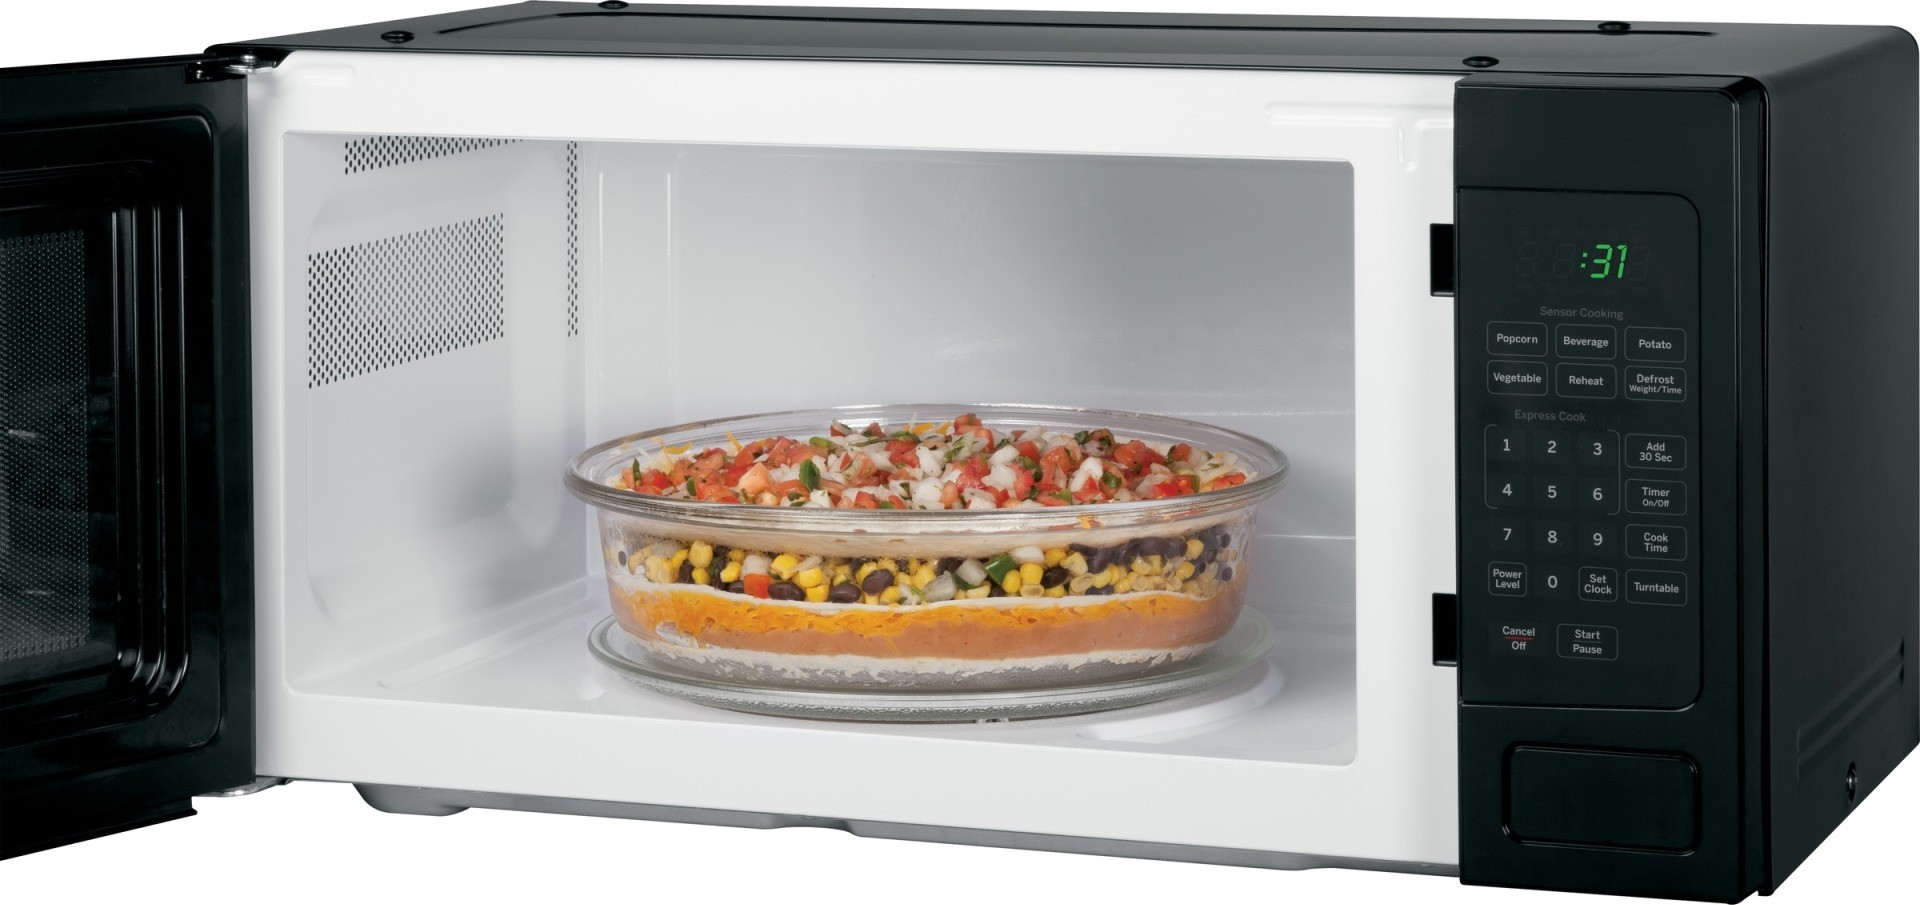 ... GE Profile 1.1 Cu. Ft. Microwave Oven, Countertop or Built In - Black